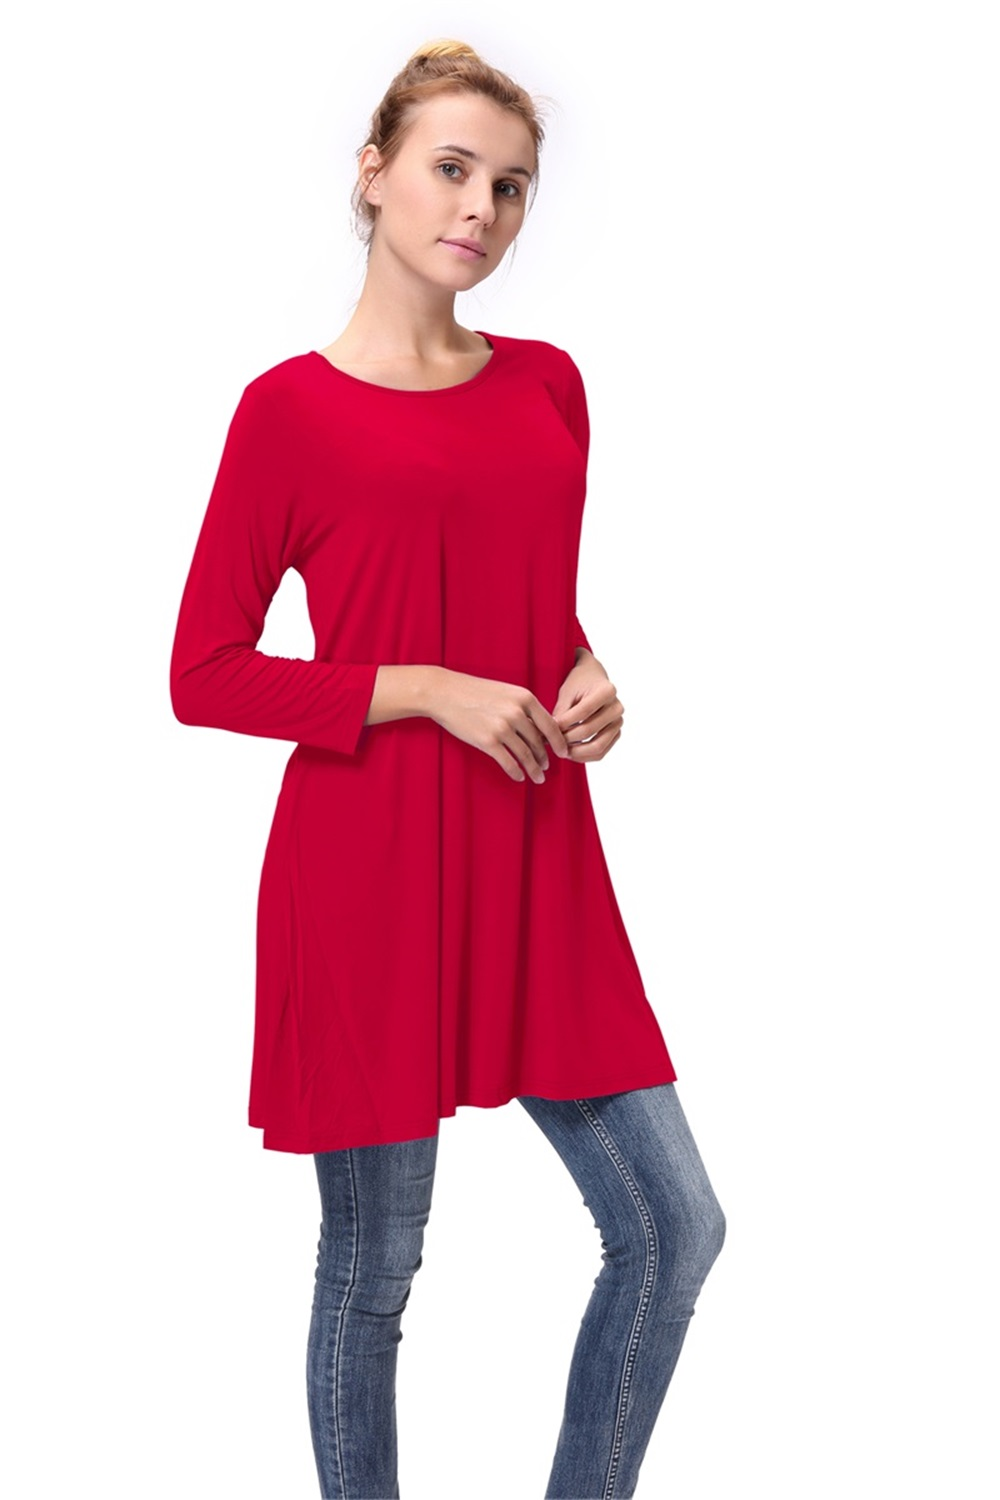 Women-039-s-Long-Tunic-Top-3-4-Sleeve-Dolman-Boat-Neck-USA-Dress-S-M-L-1X-2X-3X-PLUS thumbnail 9